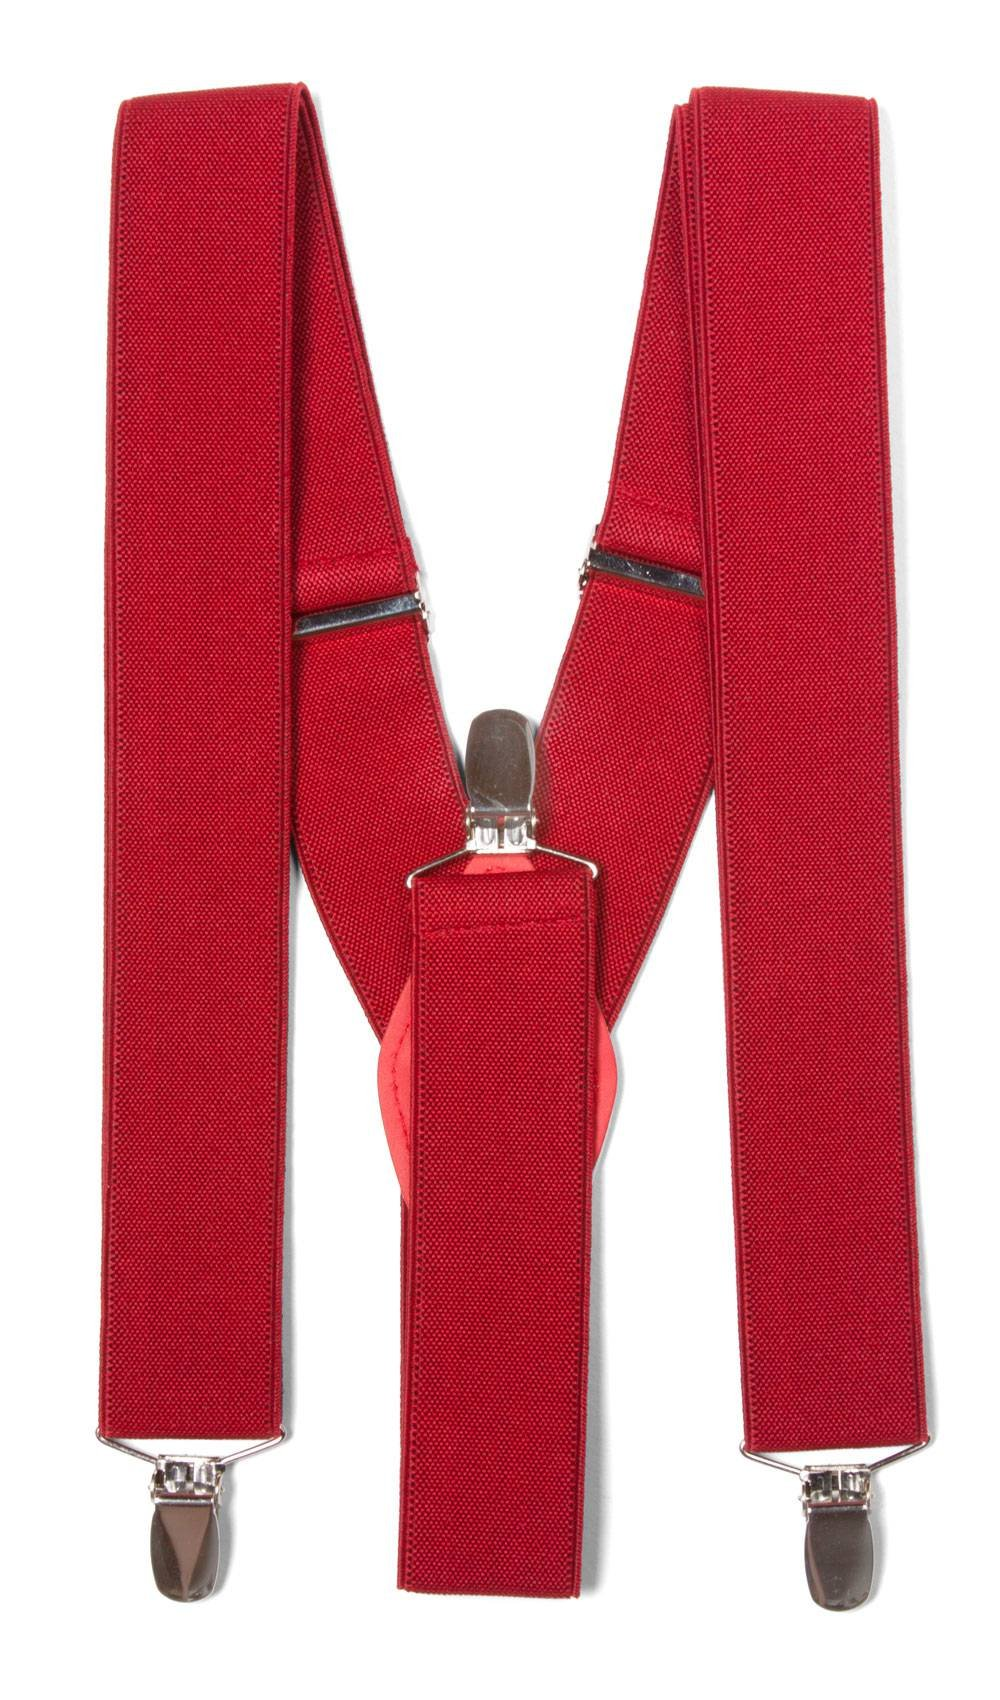 Gravity Threads Classic 1.3 Inch Wide Clip Suspenders, Red